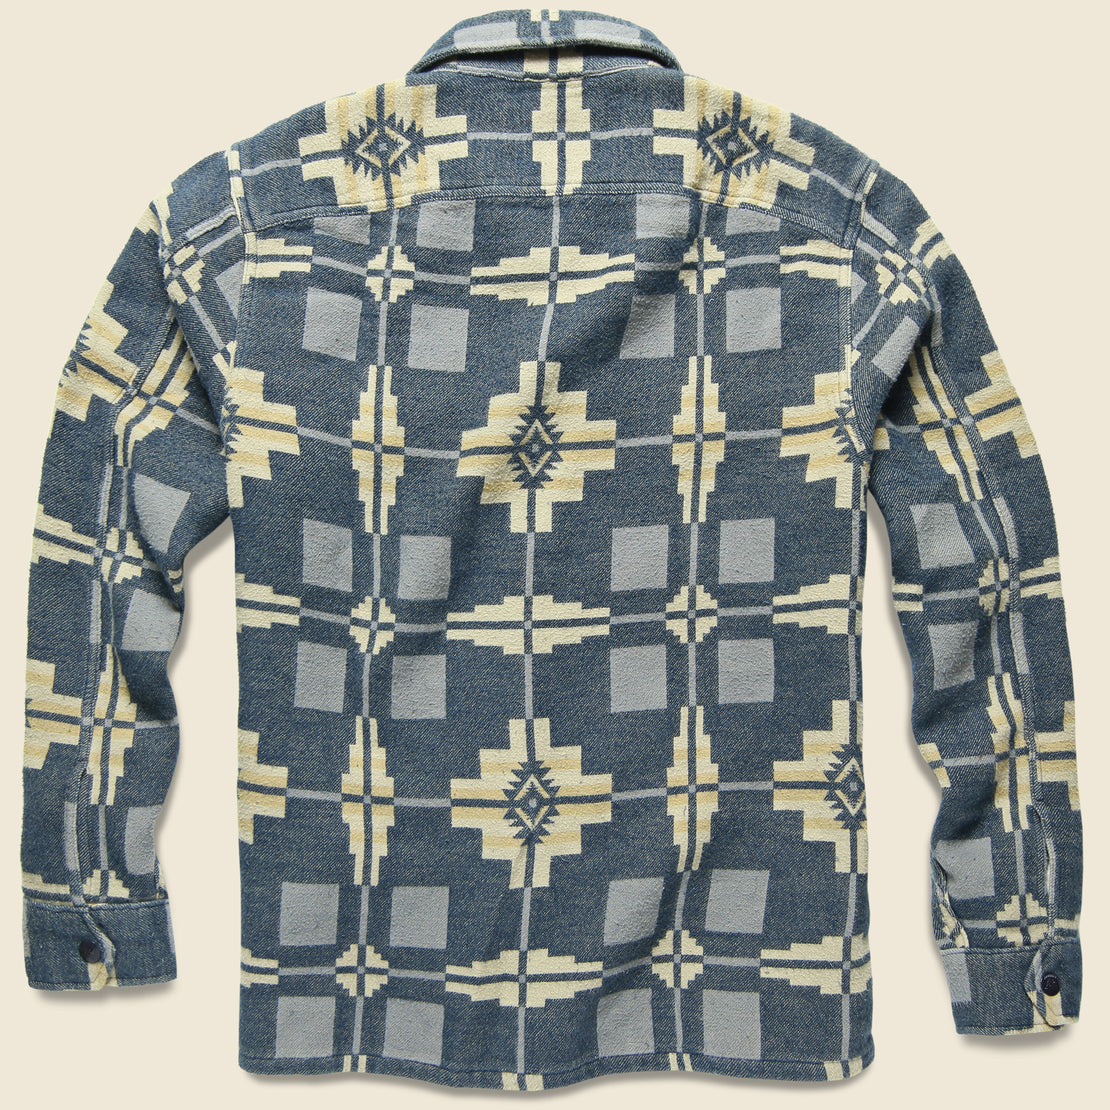 Black Bear Jacquard Overshirt - Blue/Tan